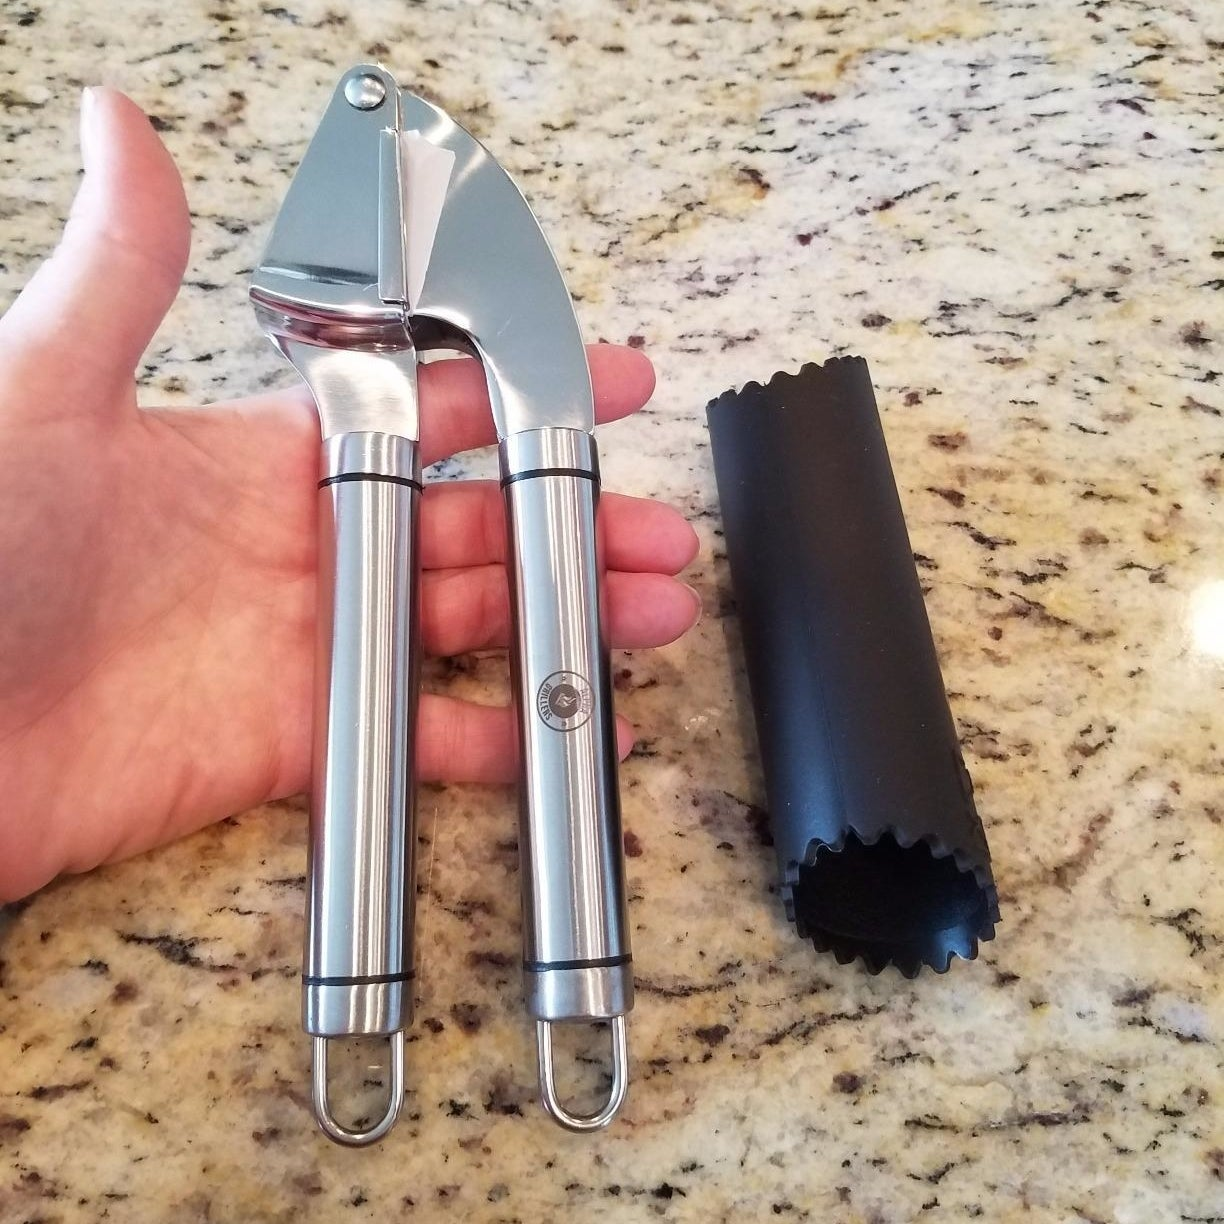 A reviewer holding the garlic press